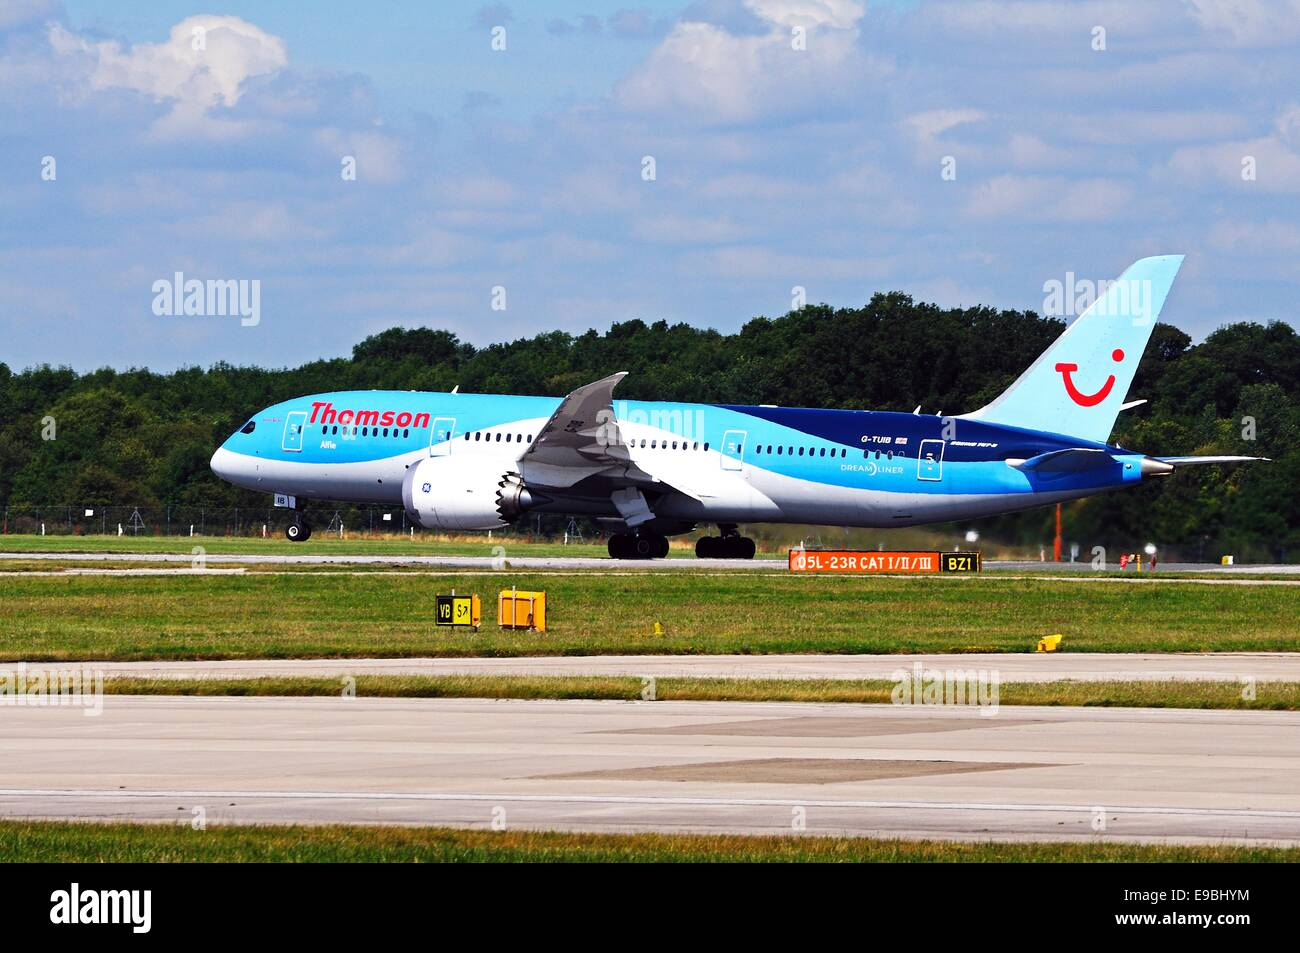 Thomson Airways Boeing 787-8 Dreamliner taxiing at Manchester airport, Manchester, Greater Manchester, England,Stock Photo